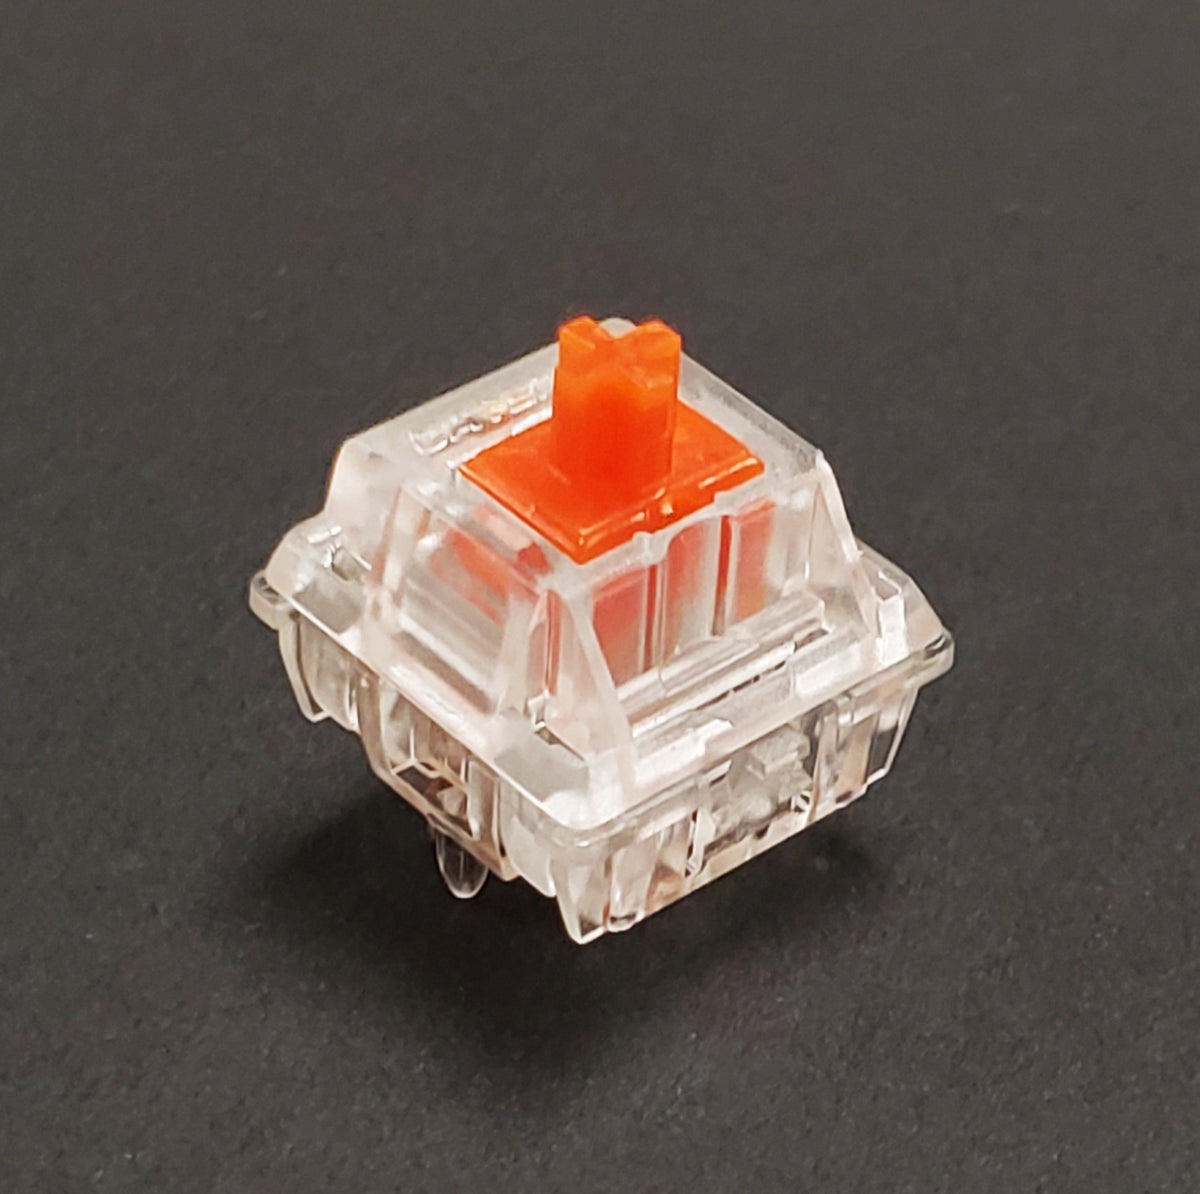 Orange Healios V2 (Silent Linear)